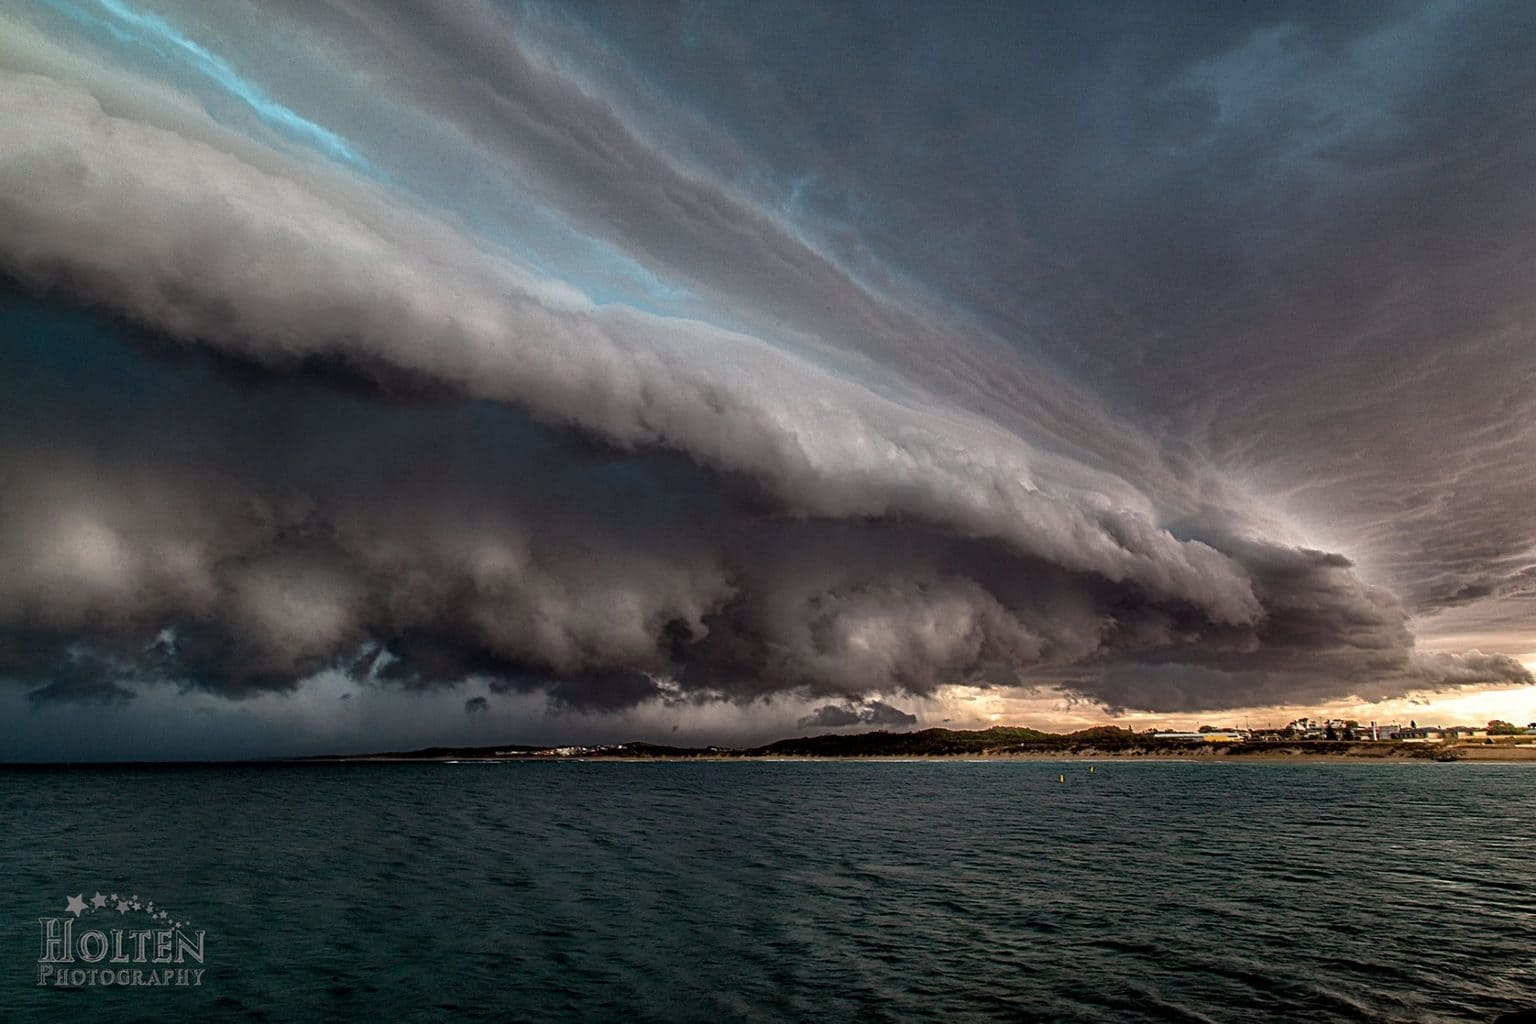 My first real storm chase and I was lucky to get this beauty of a shelf cloud as she crossed the coast north of Perth WA in a lil coastal town called Port Dennison. 01.02.2015